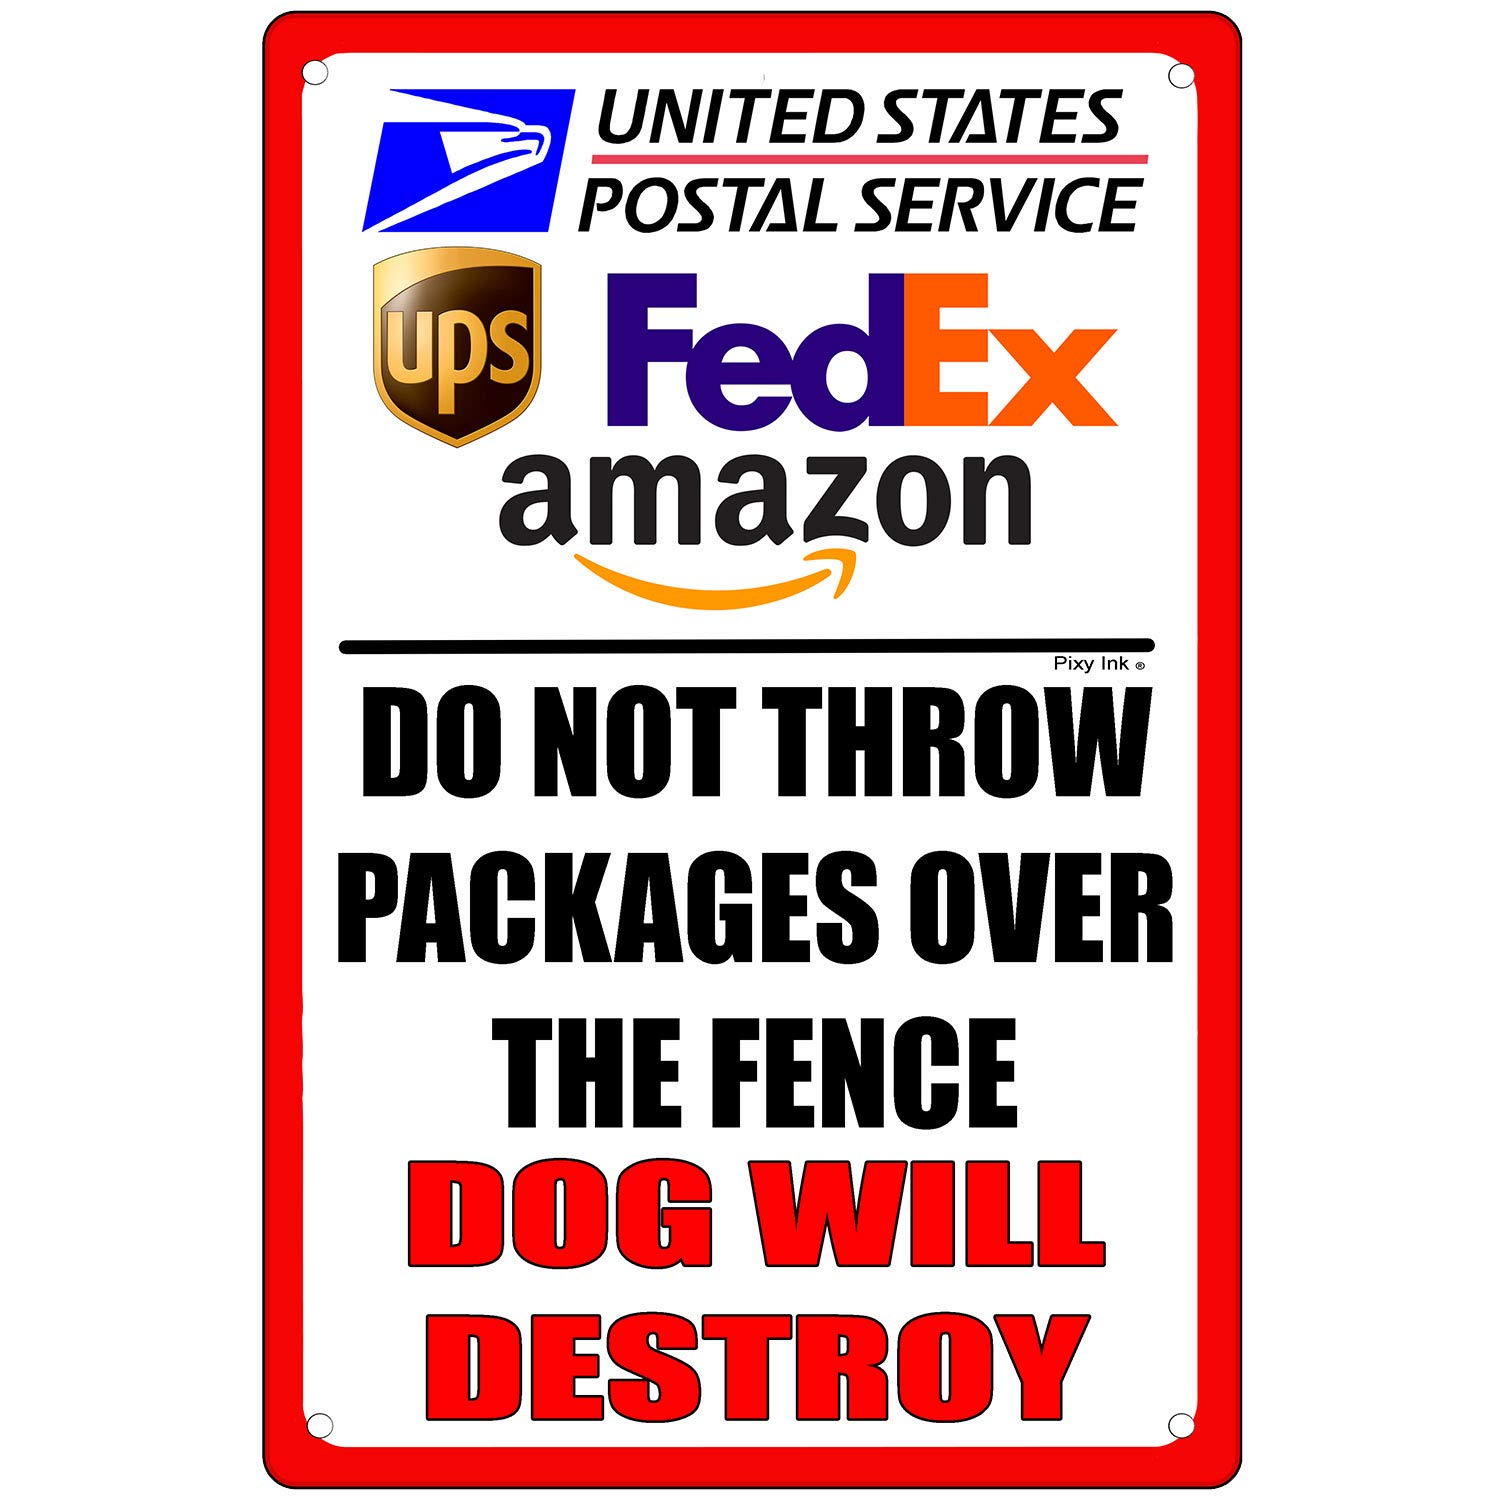 Do Not Throw Packages Over Fence Dog Will Destroy Metal Sign 6x9 Inches